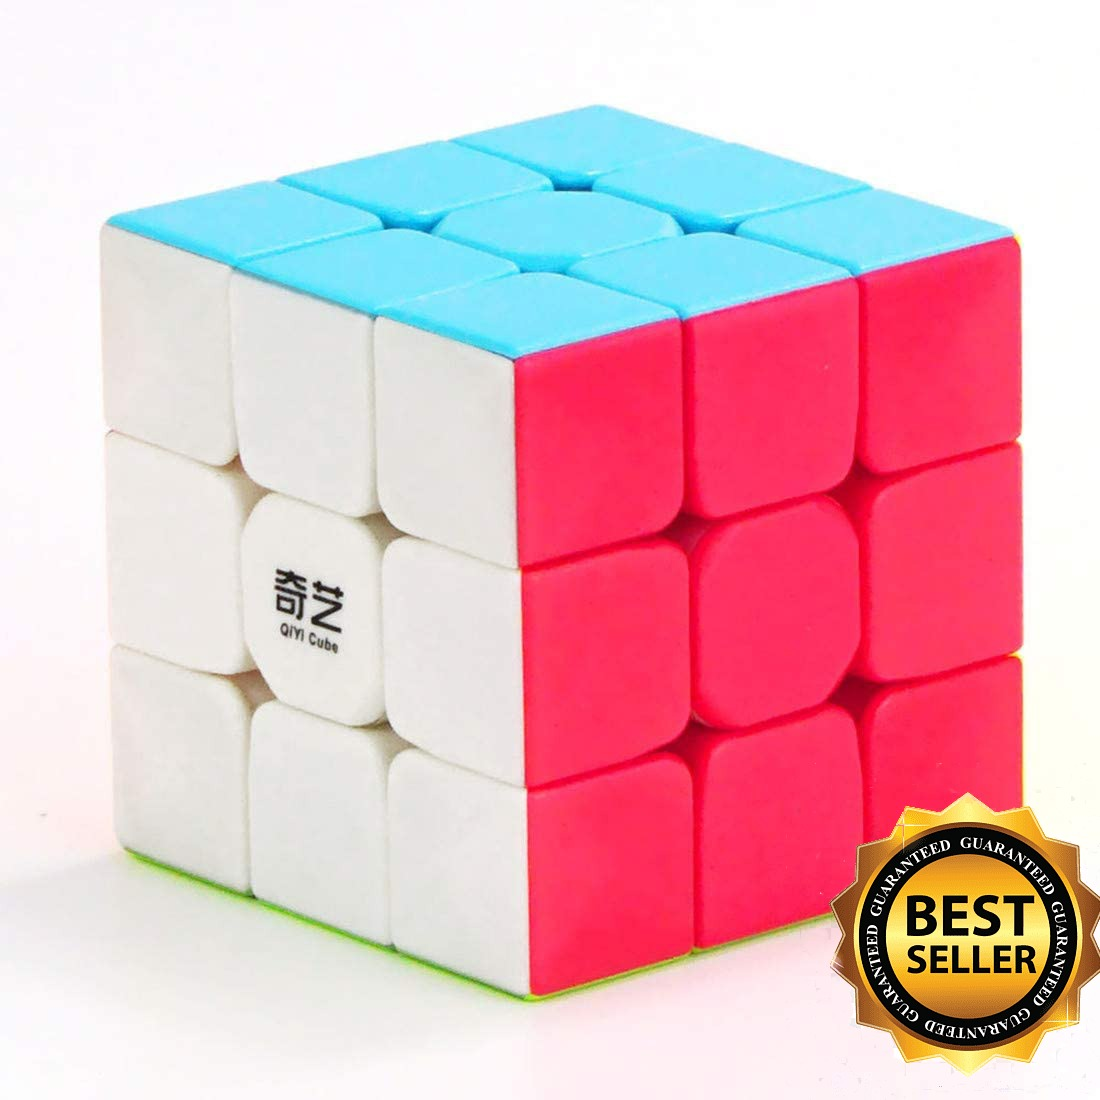 High quality rubik cube 3x3 multicolor smooth in playing Qiyi warrior Fast rubik cube 3x3x3 Best Toy for kids , teen and adults,The most educational toy to effectively improve your child concentration ,responsivness and memory,Rubik Cube